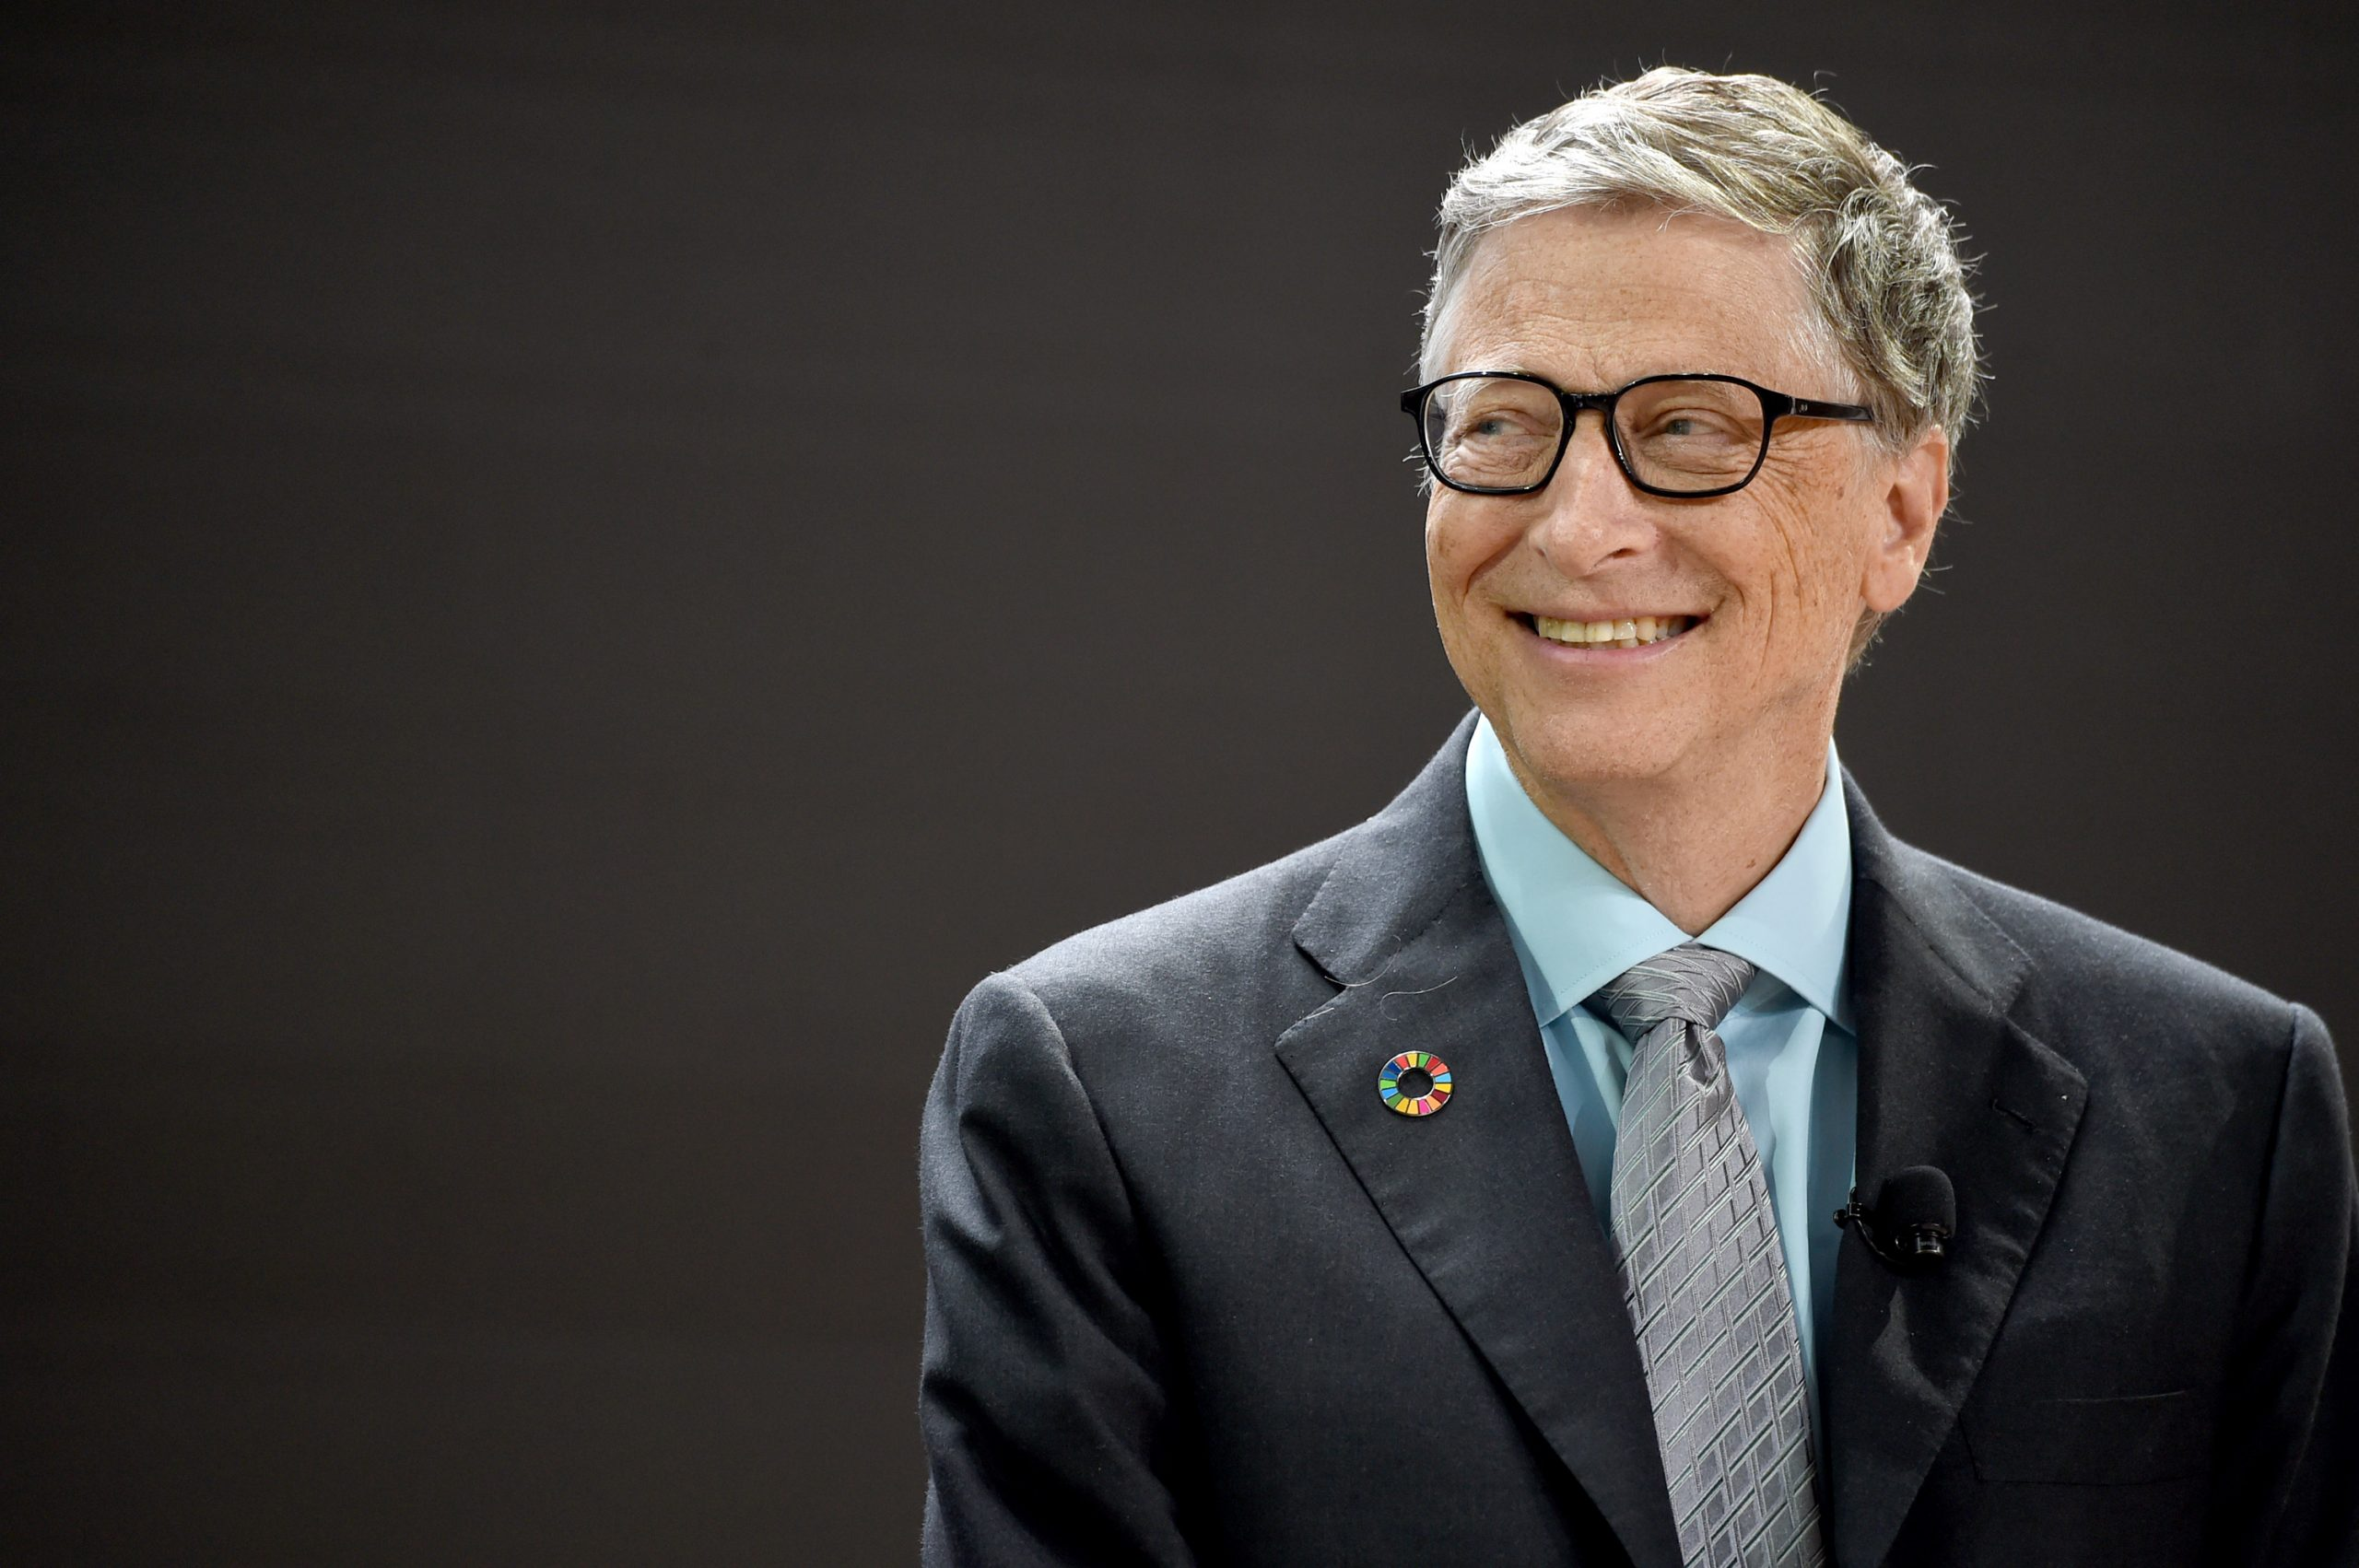 Biografia de Bill Gates